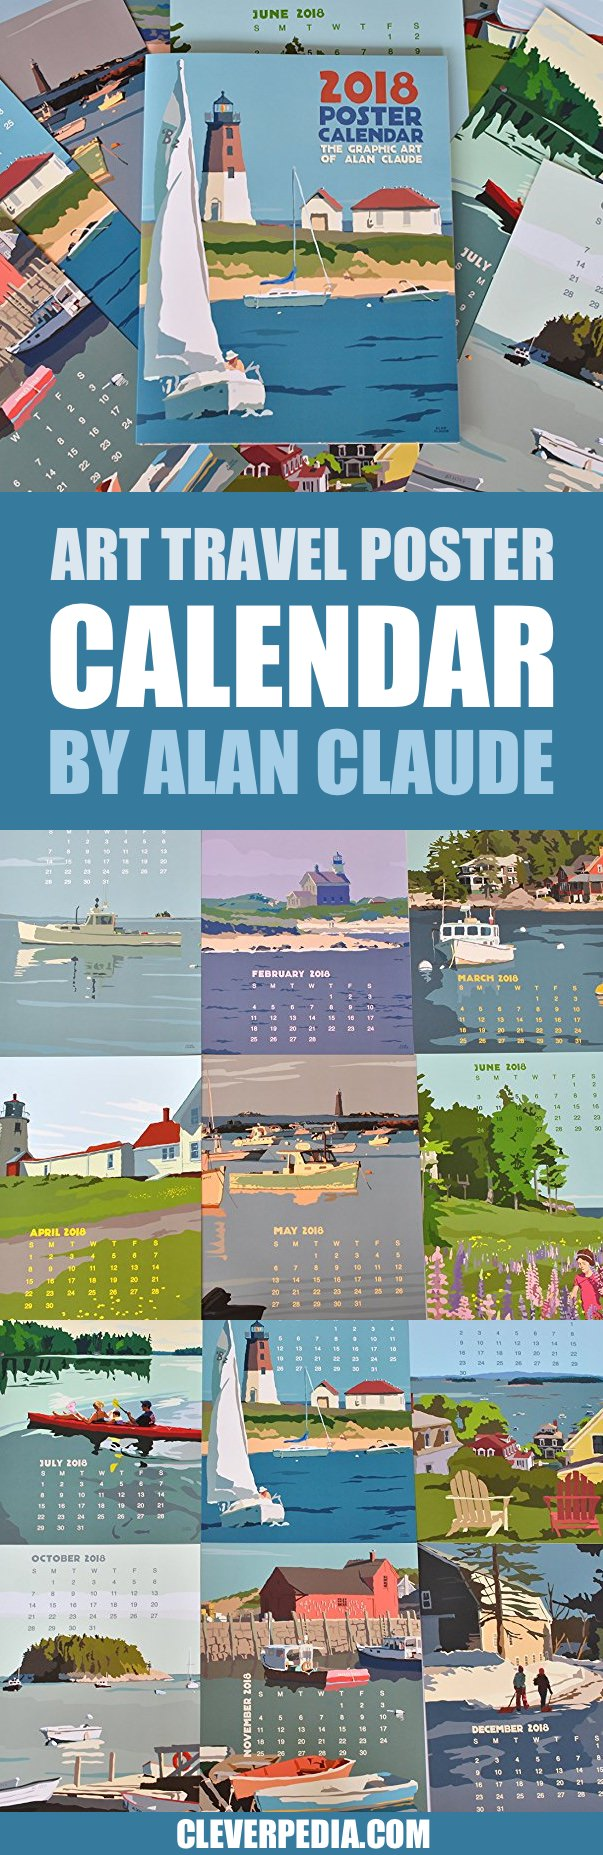 This unique wall calendar by artist Alan Claude is inspired by travel poster style graphics of the 20s and 30s, as well as a little bit of Edward Hopper. These poster prints feature scenes from Maine and the New England coast. The paper is thick and printed with wind power.